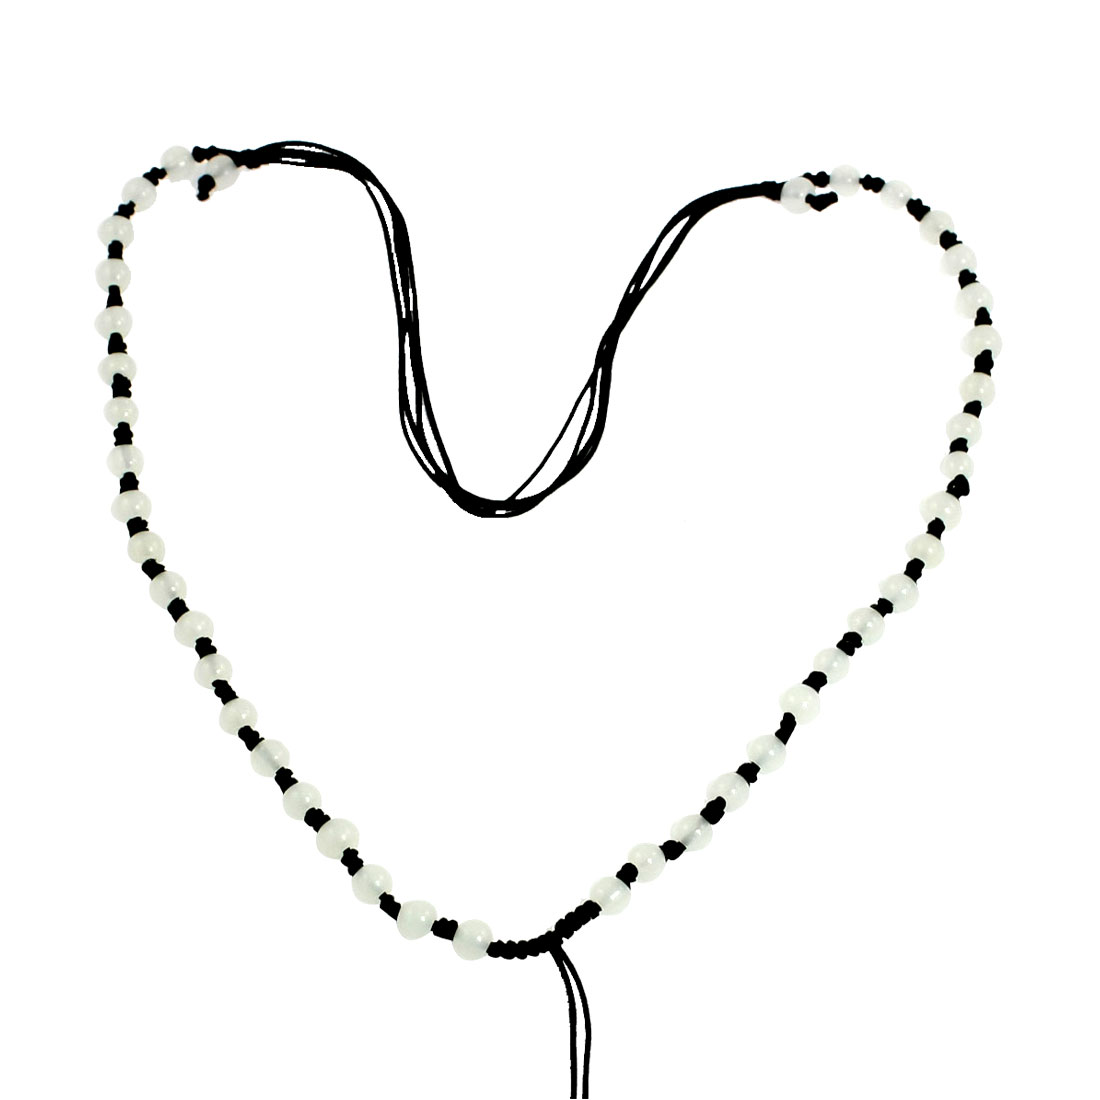 Black Nylon Braid String Plastic Beads Necklaces 4 Pcs for Lady